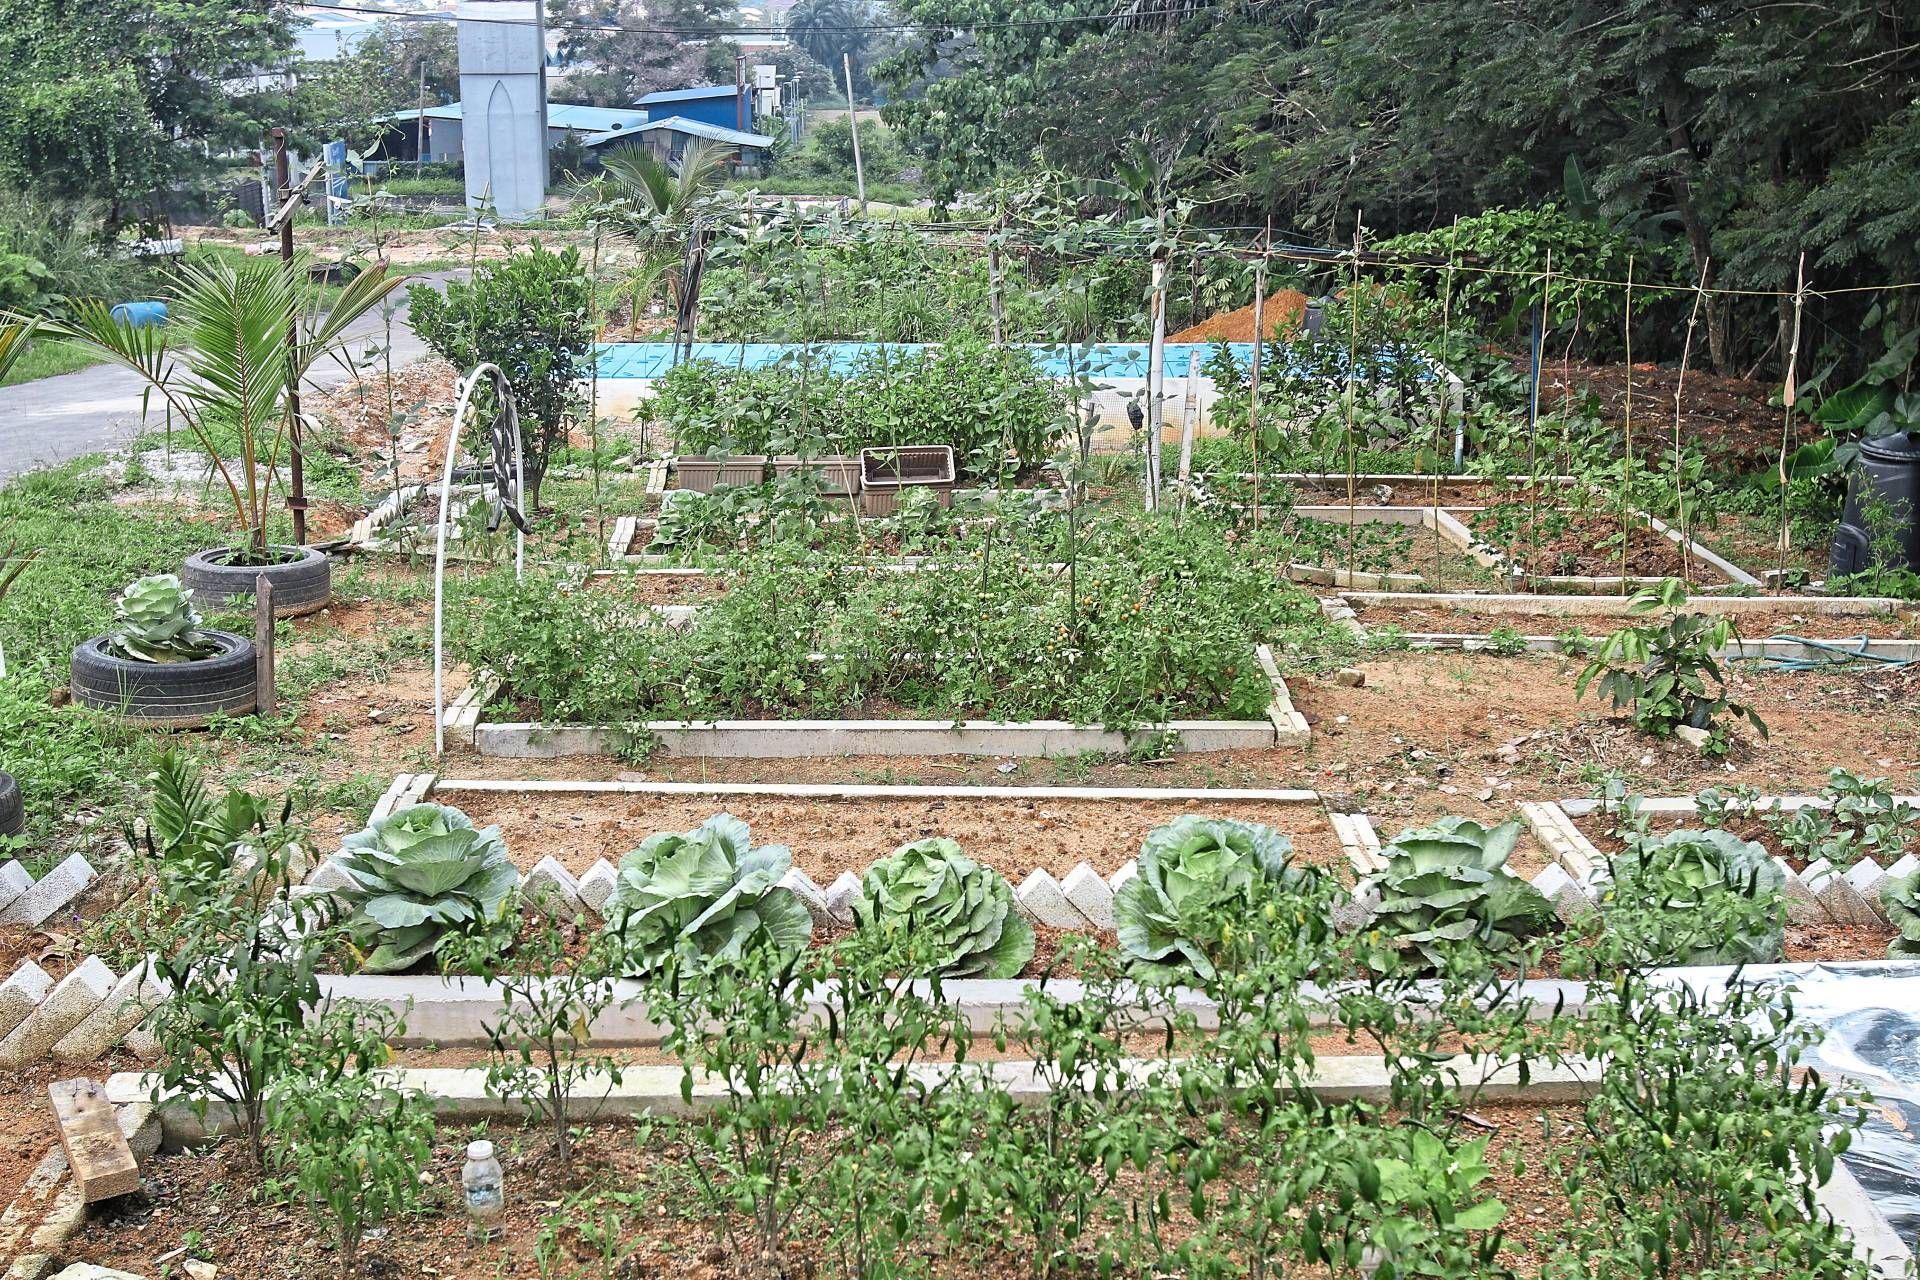 Kampung Selamat's urban farm sits on Syabas reserve land with permission from the water authority.